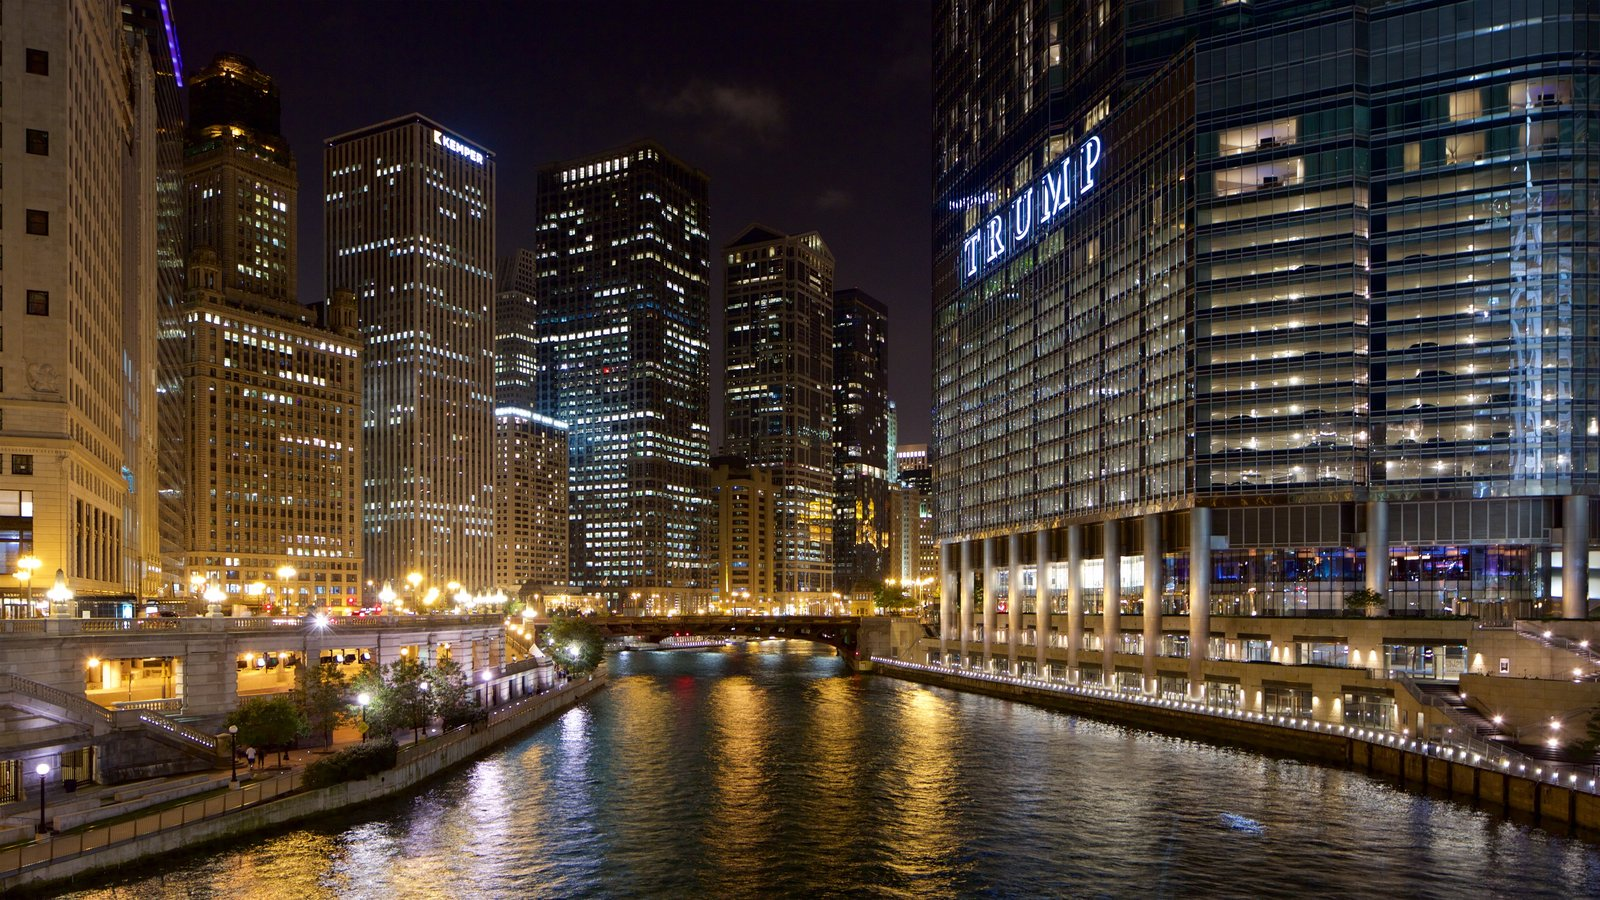 The Loop - Downtown showing a river or creek, night scenes and cbd